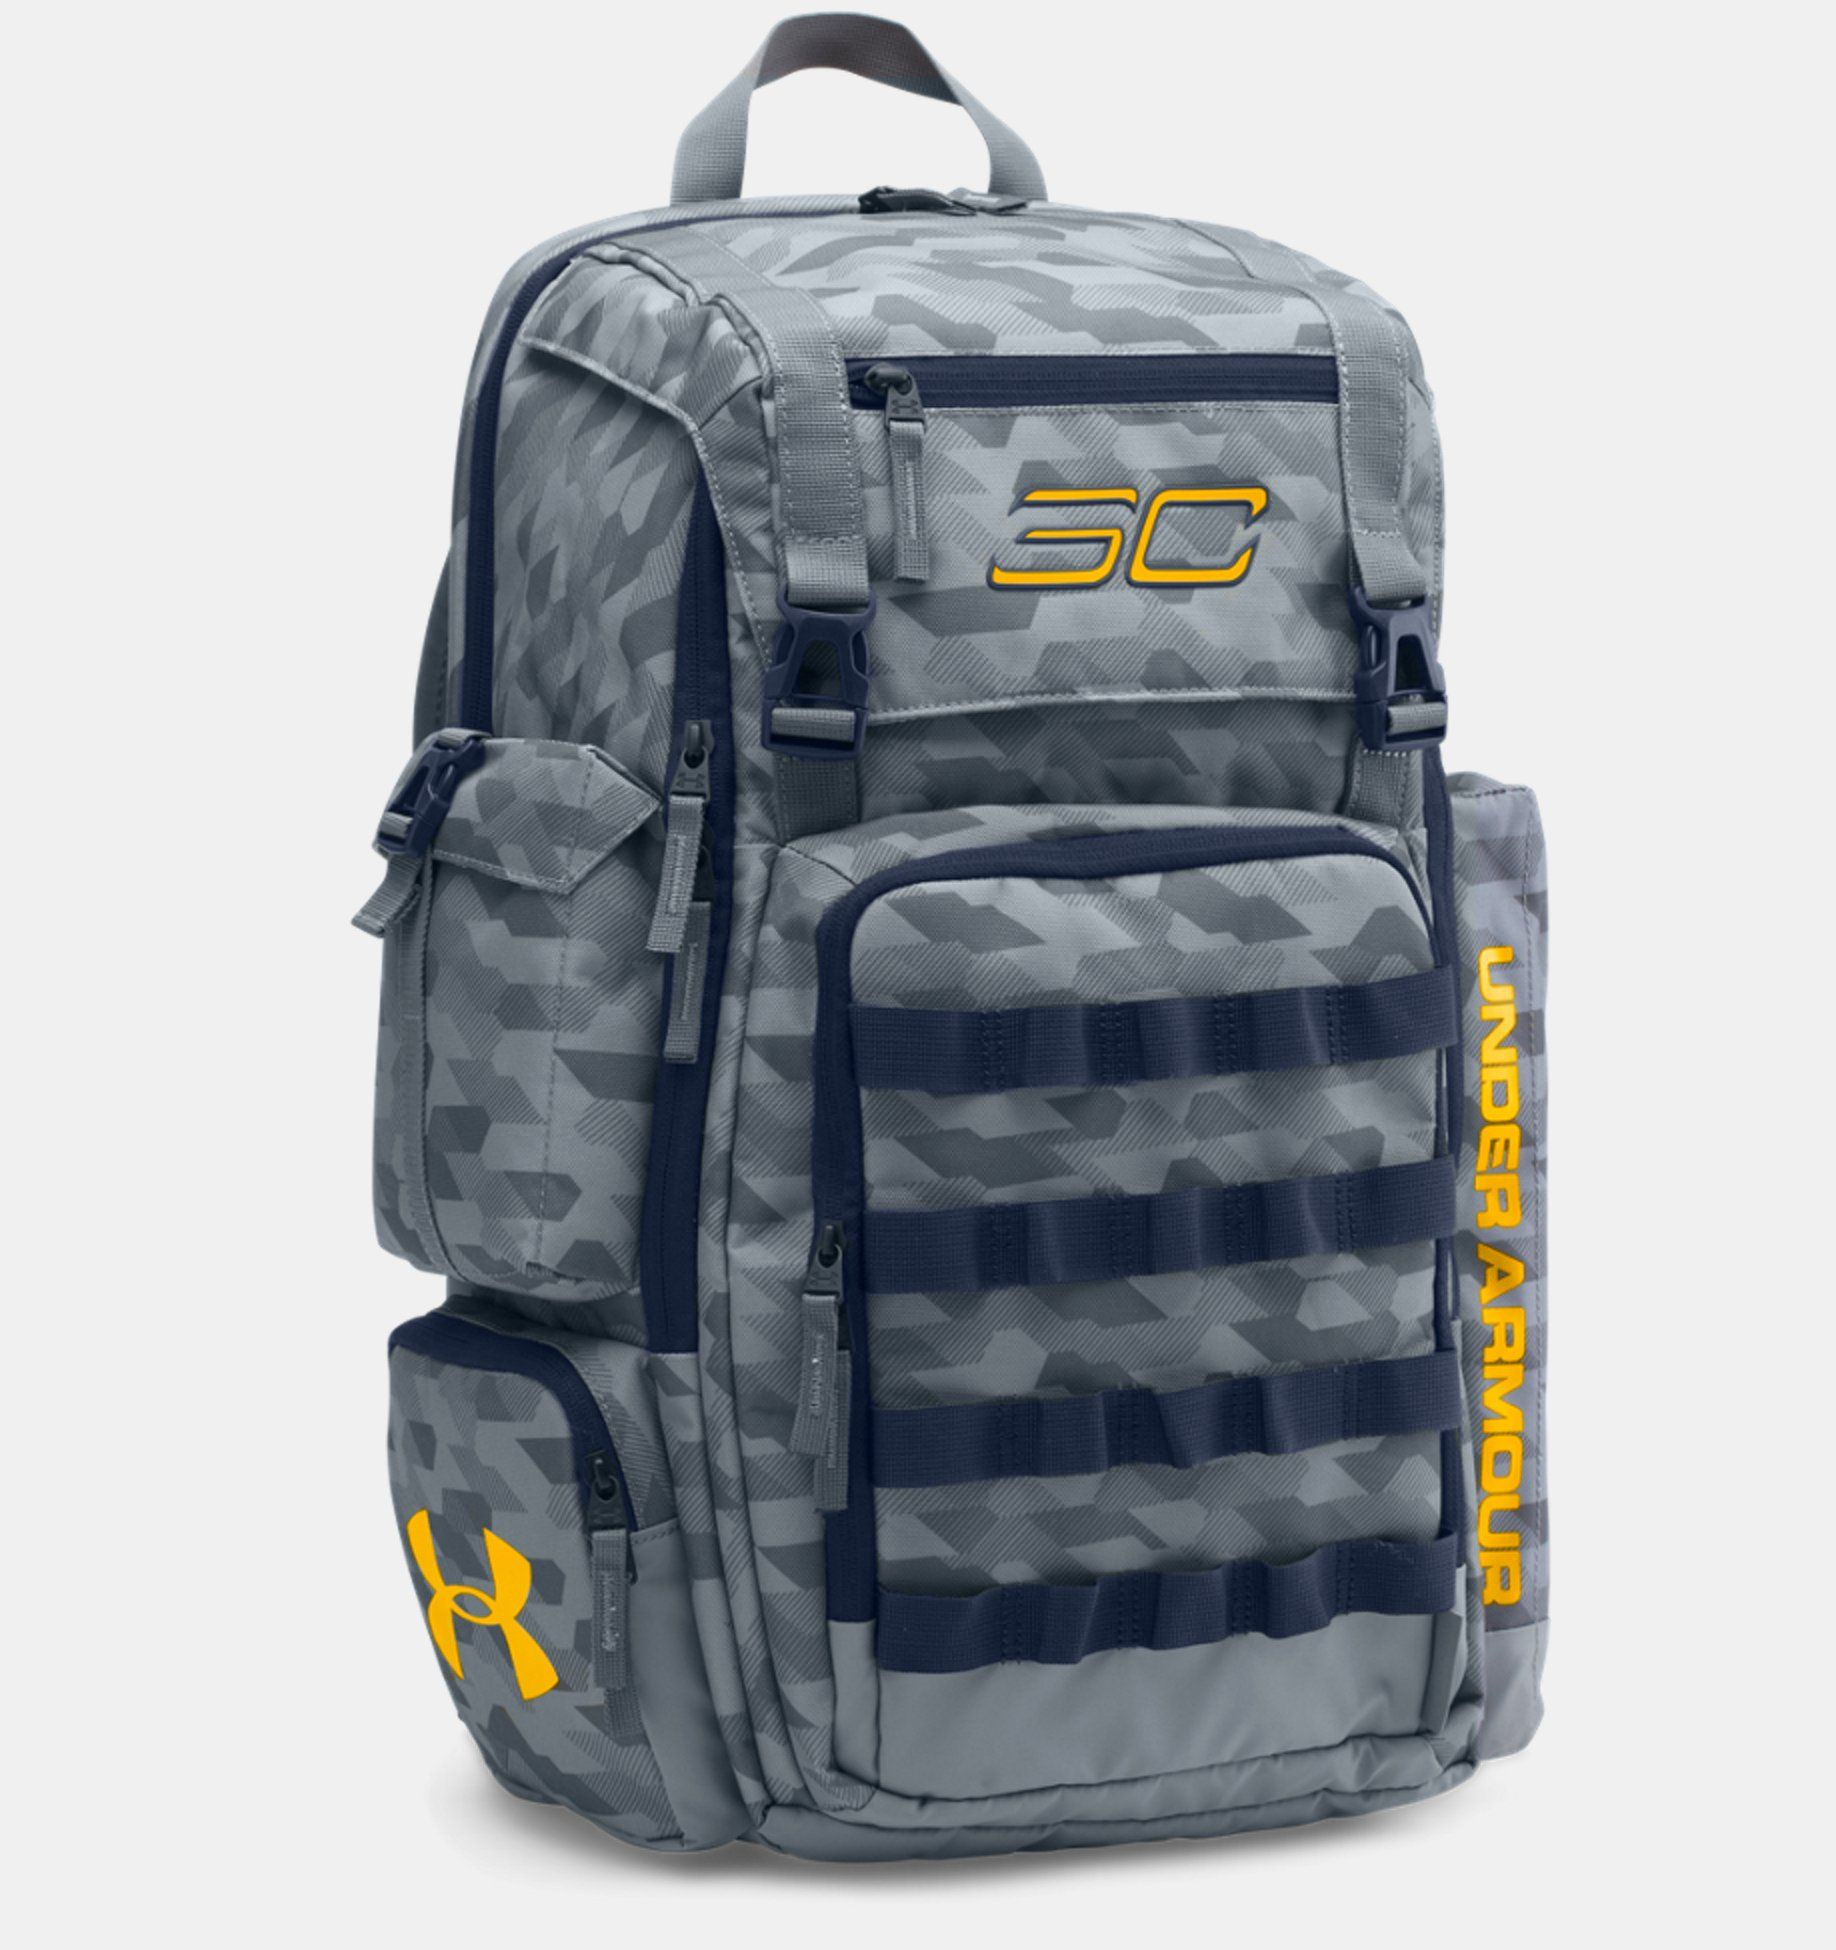 Men s UA SC30 Backpack. Men s BackpacksSchool BackpacksUnder Armour ... 8df6907521225